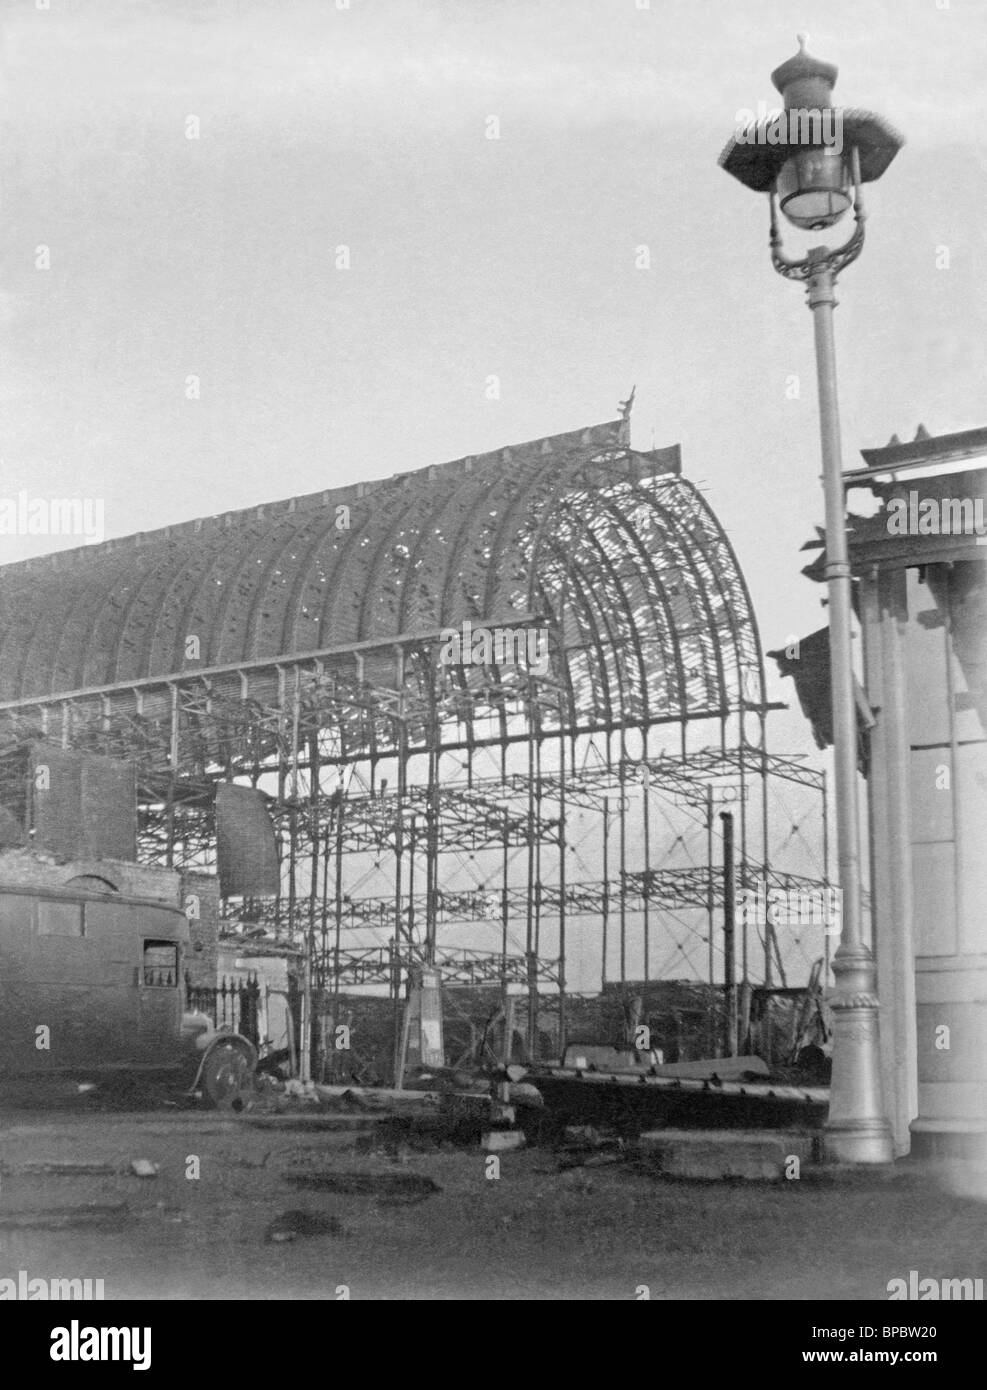 Shell Photography Exhibition : Crystal palace exhibition stock photos